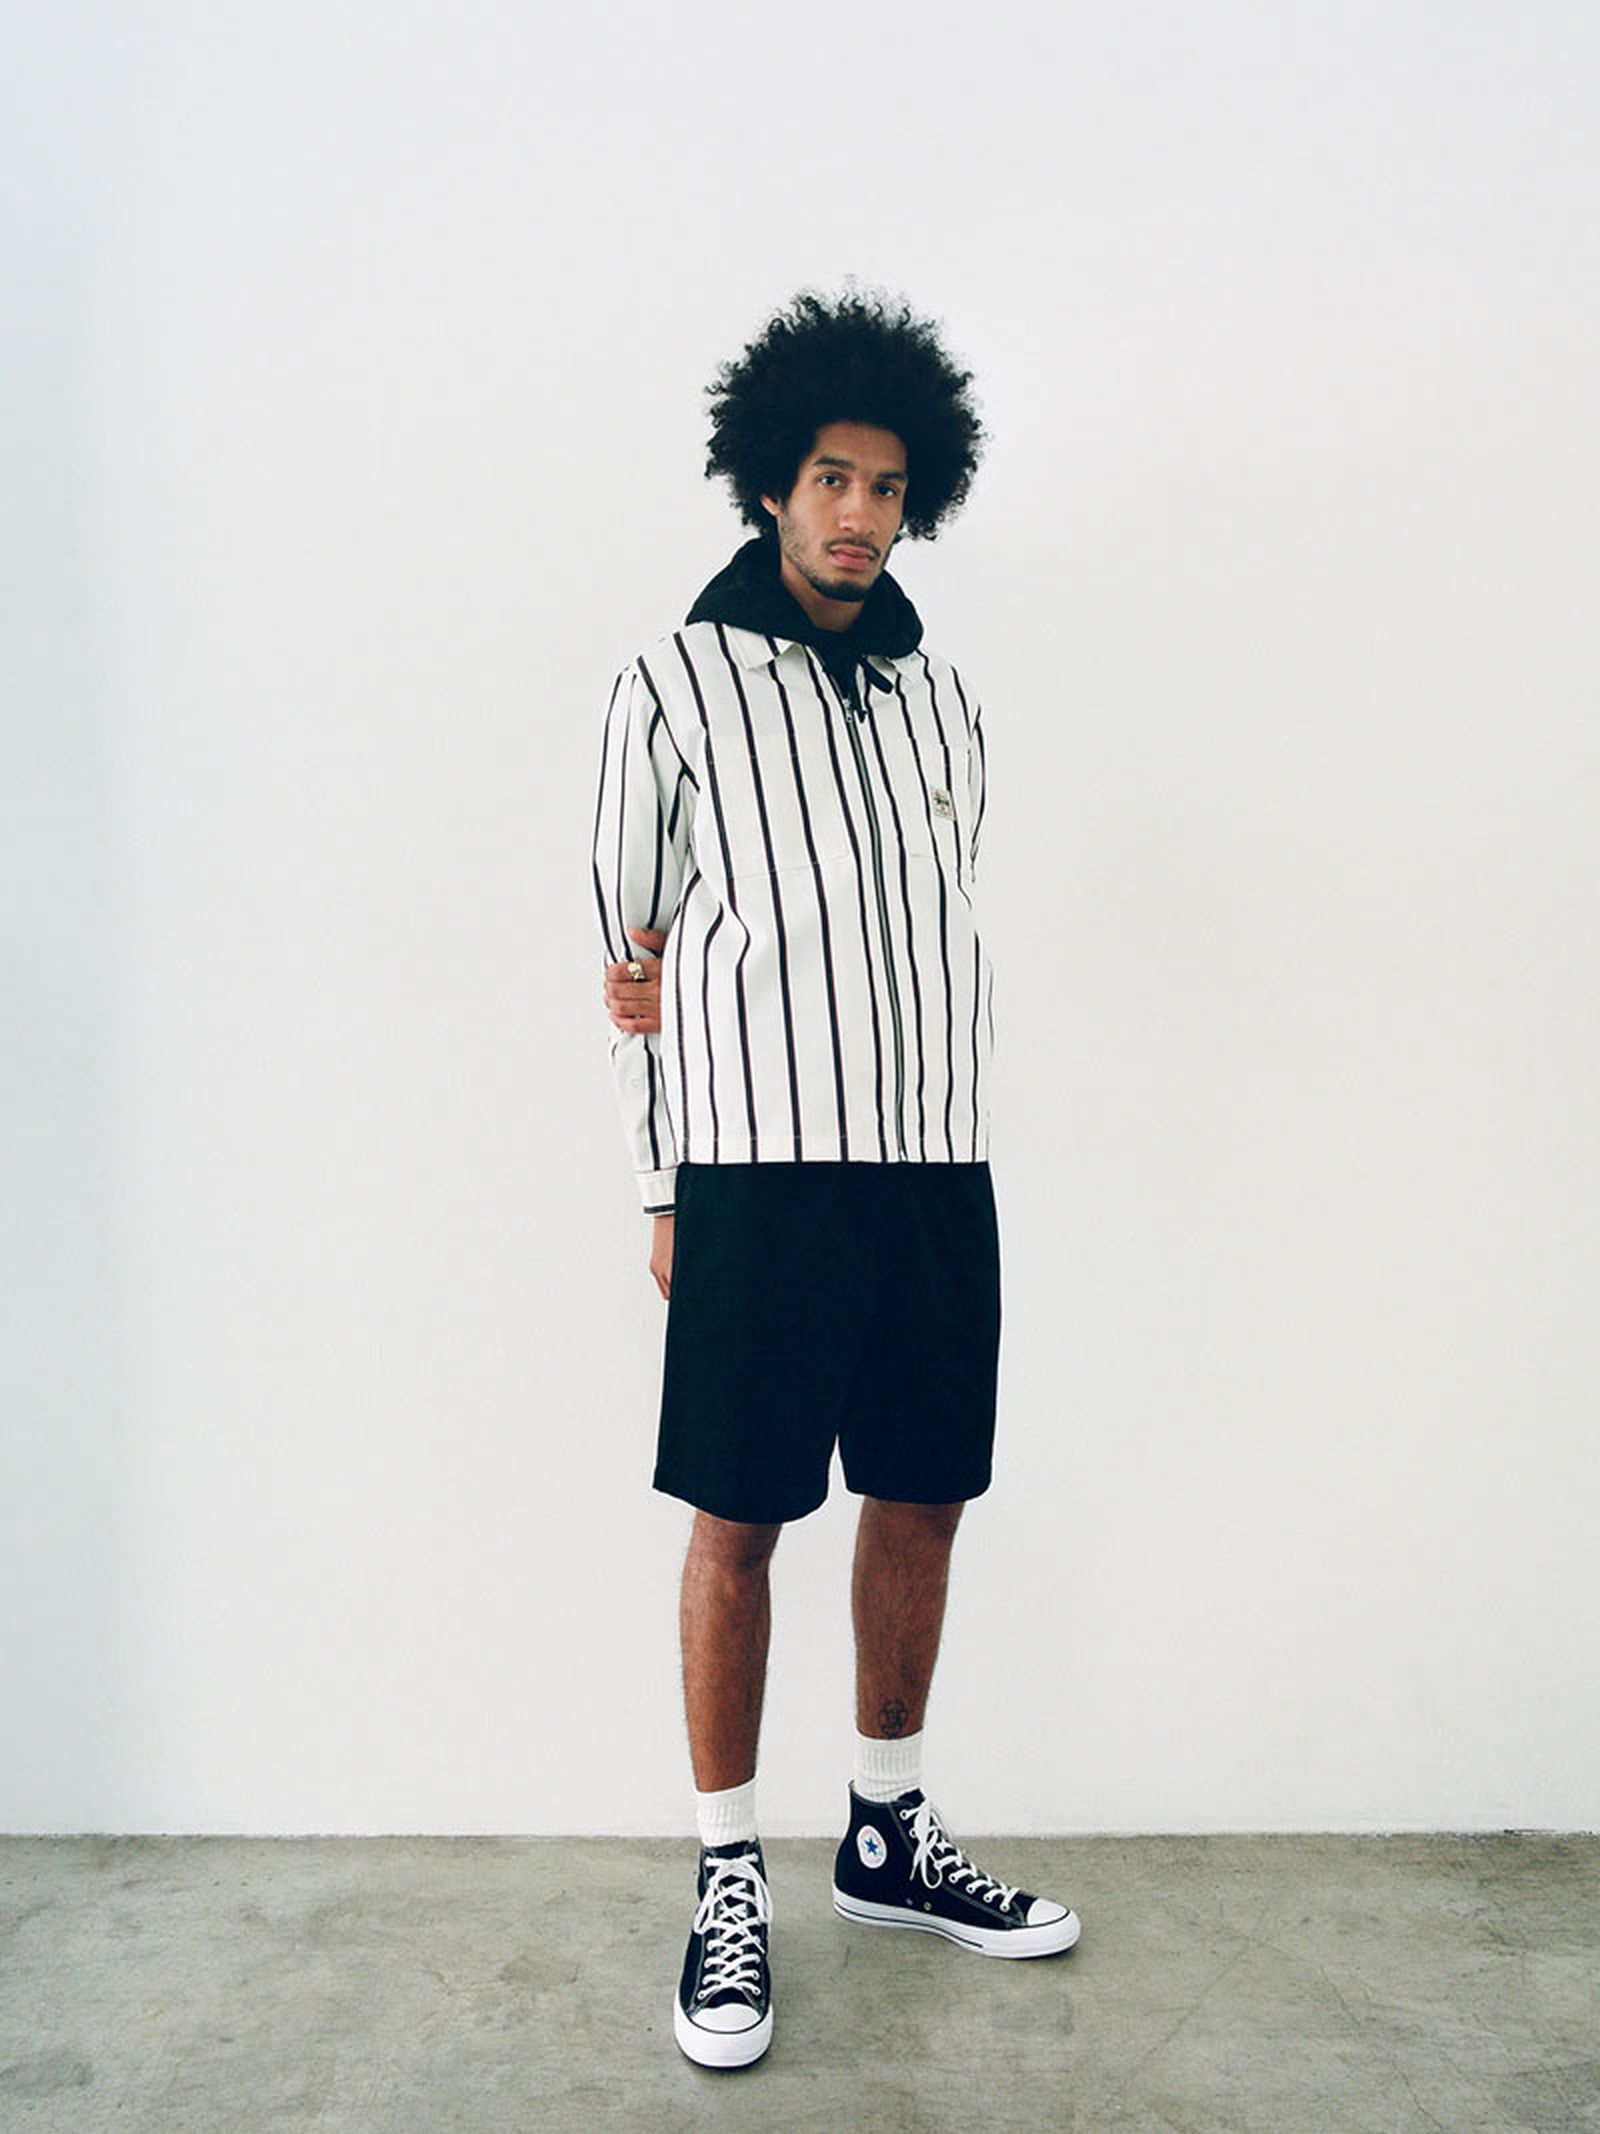 Stussy SP20 Lookbook - D1 Mens - 20